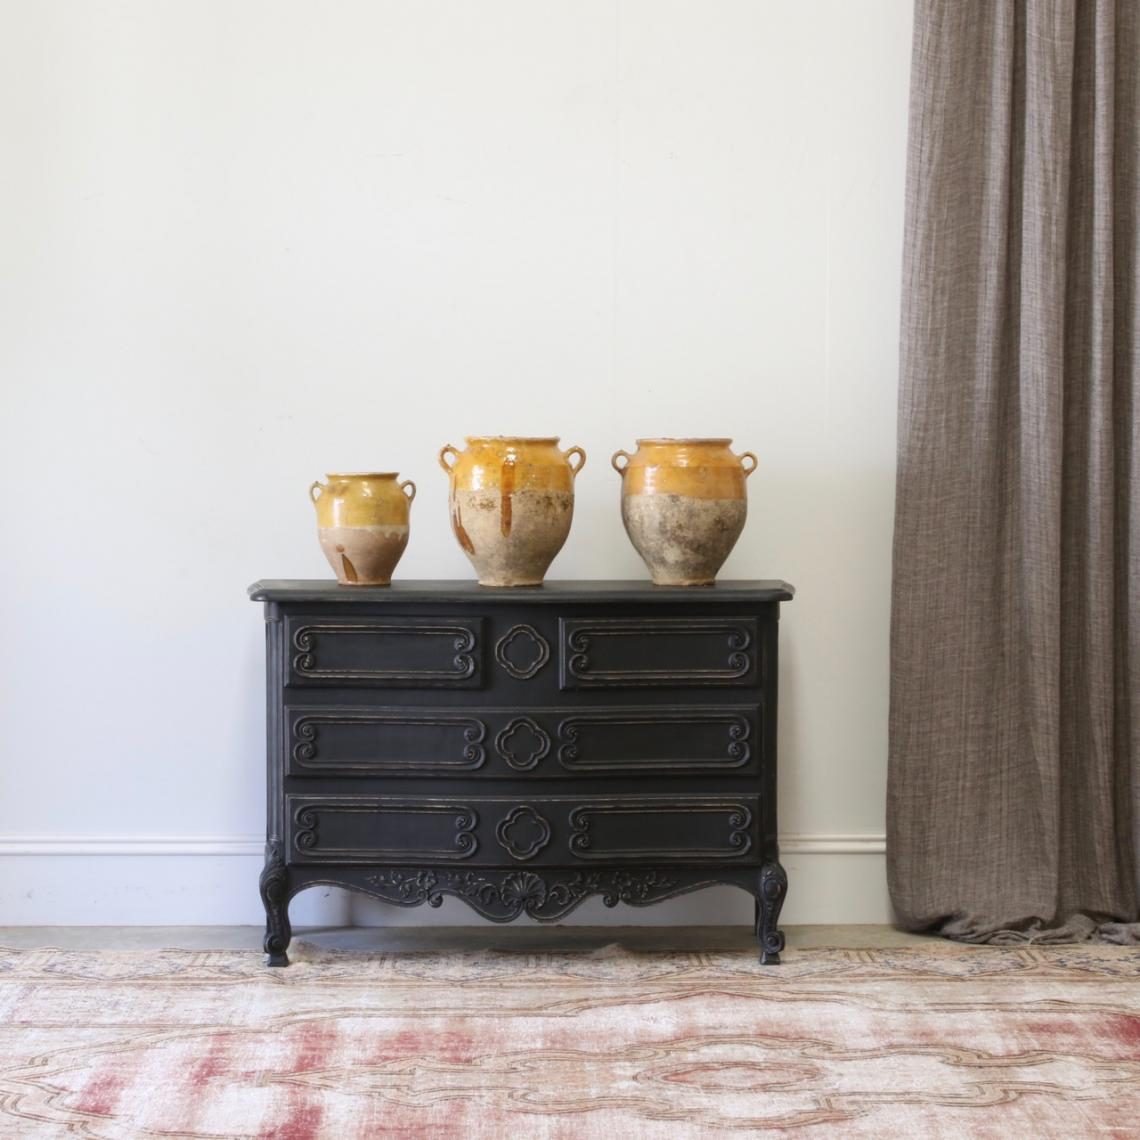 118-35 - Ebonised Chest of Drawers